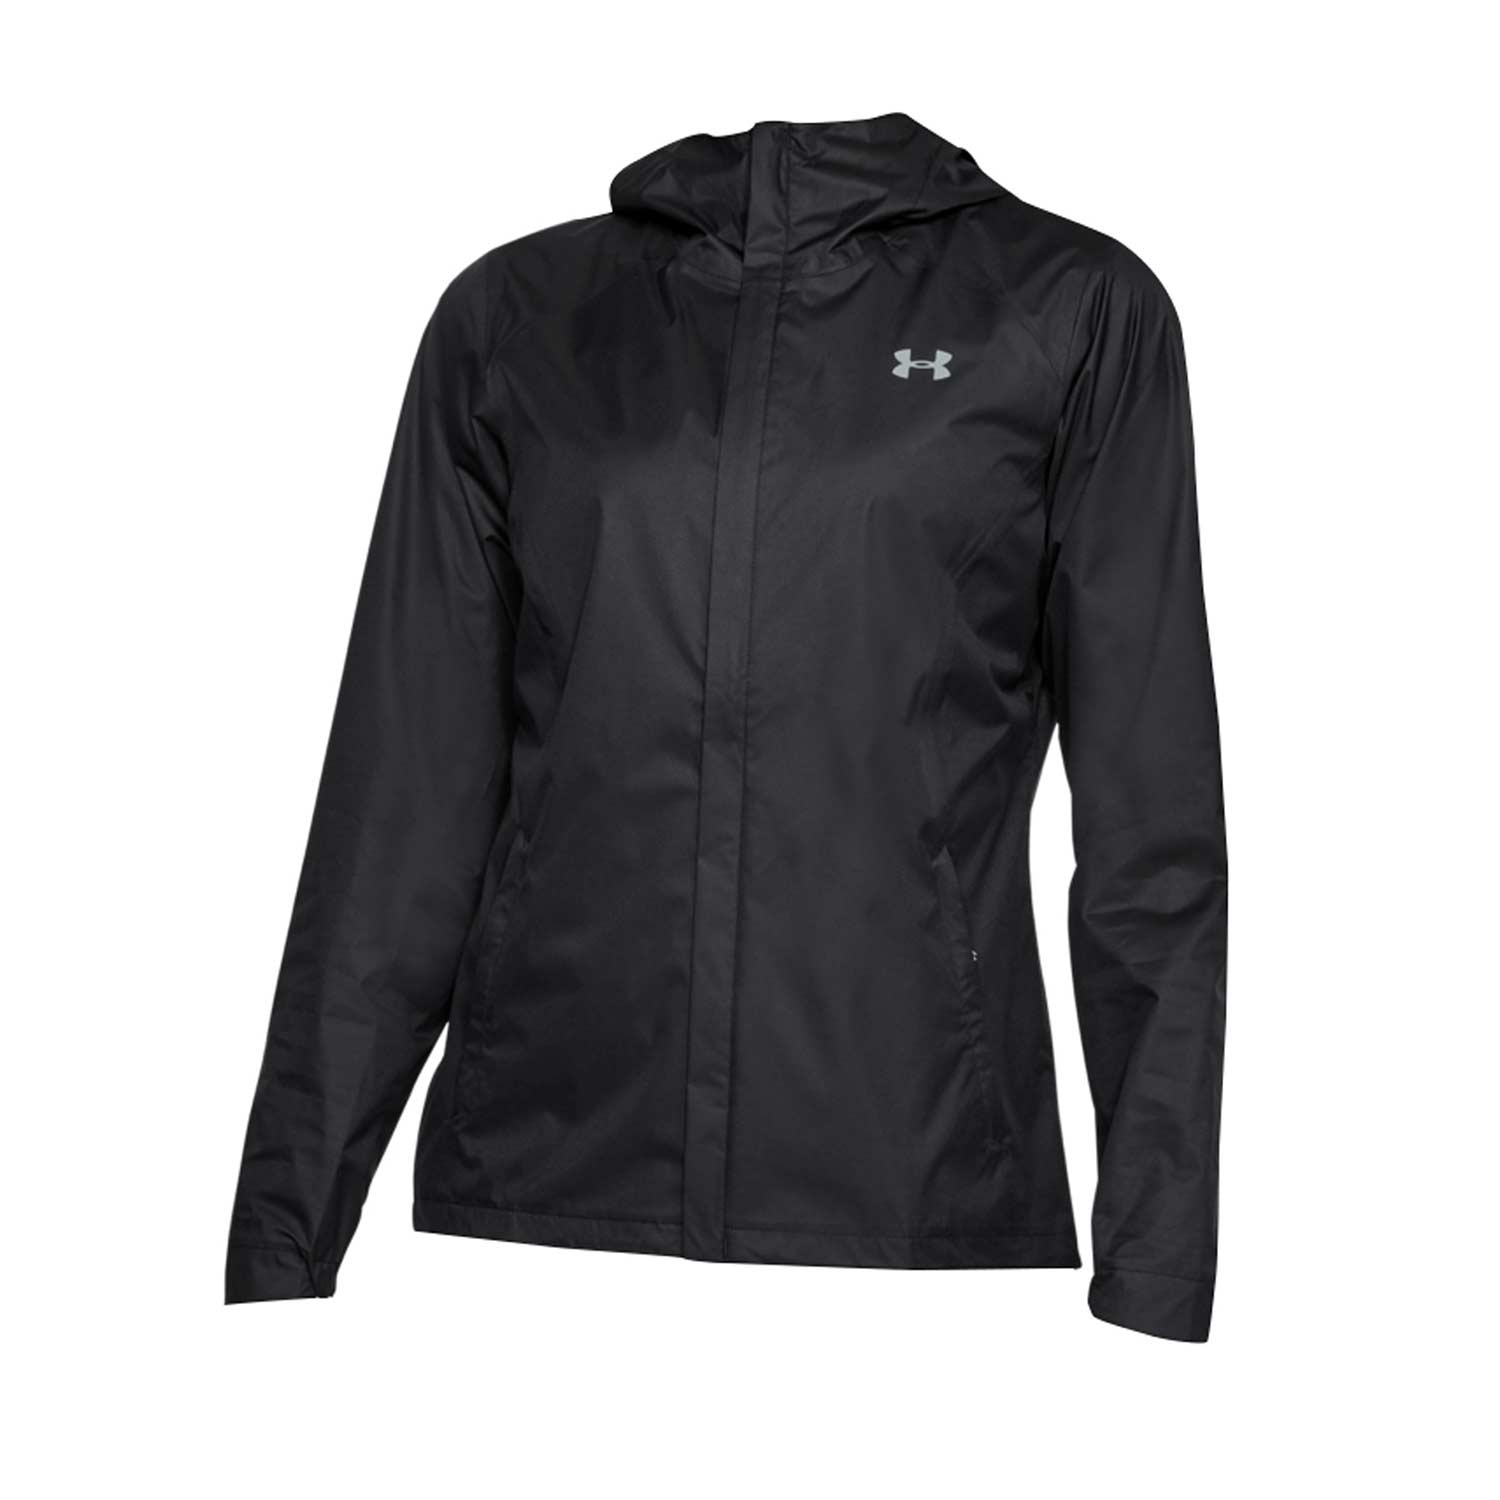 Under Armour Women's Overlook Jacket